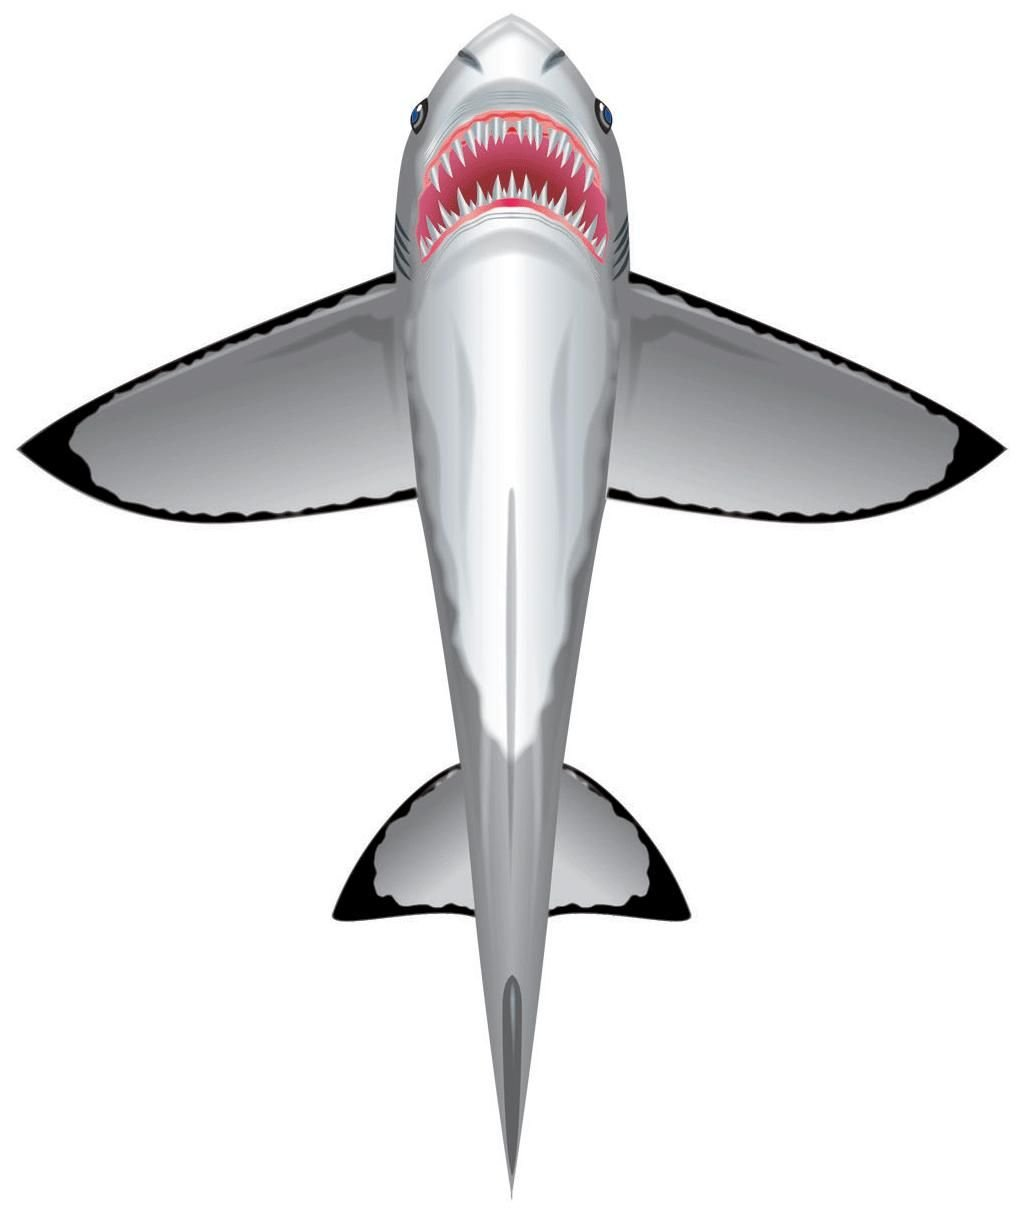 WindnSun SeaLife Great White Shark Nylon Kite-60 Inches Tall